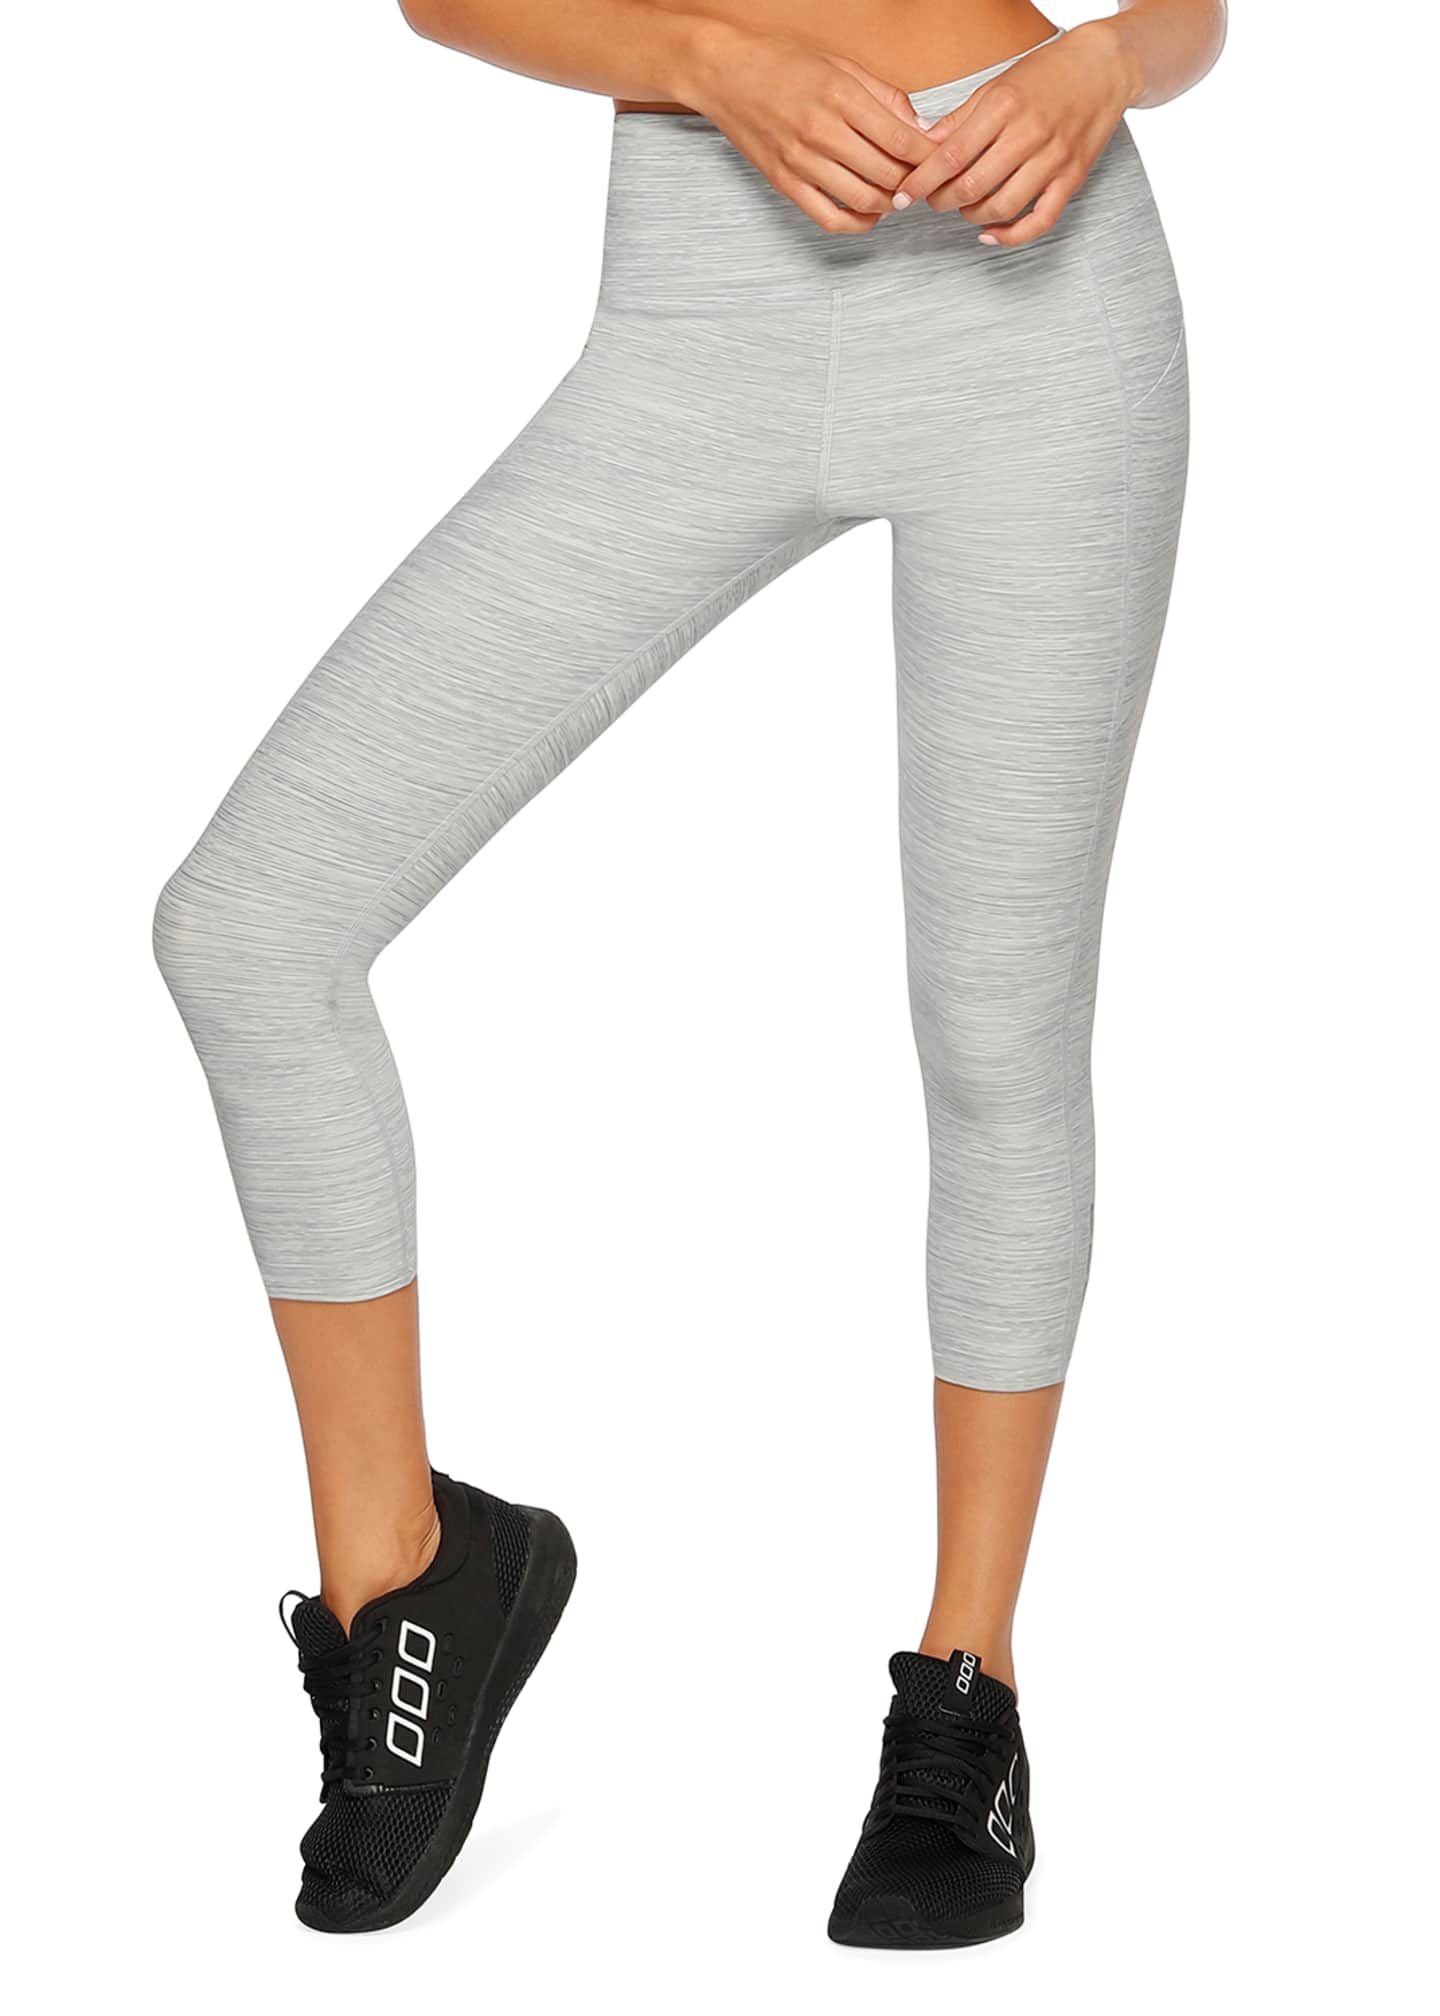 Lorna Jane Tech Ultimate Support 7/8 Tights